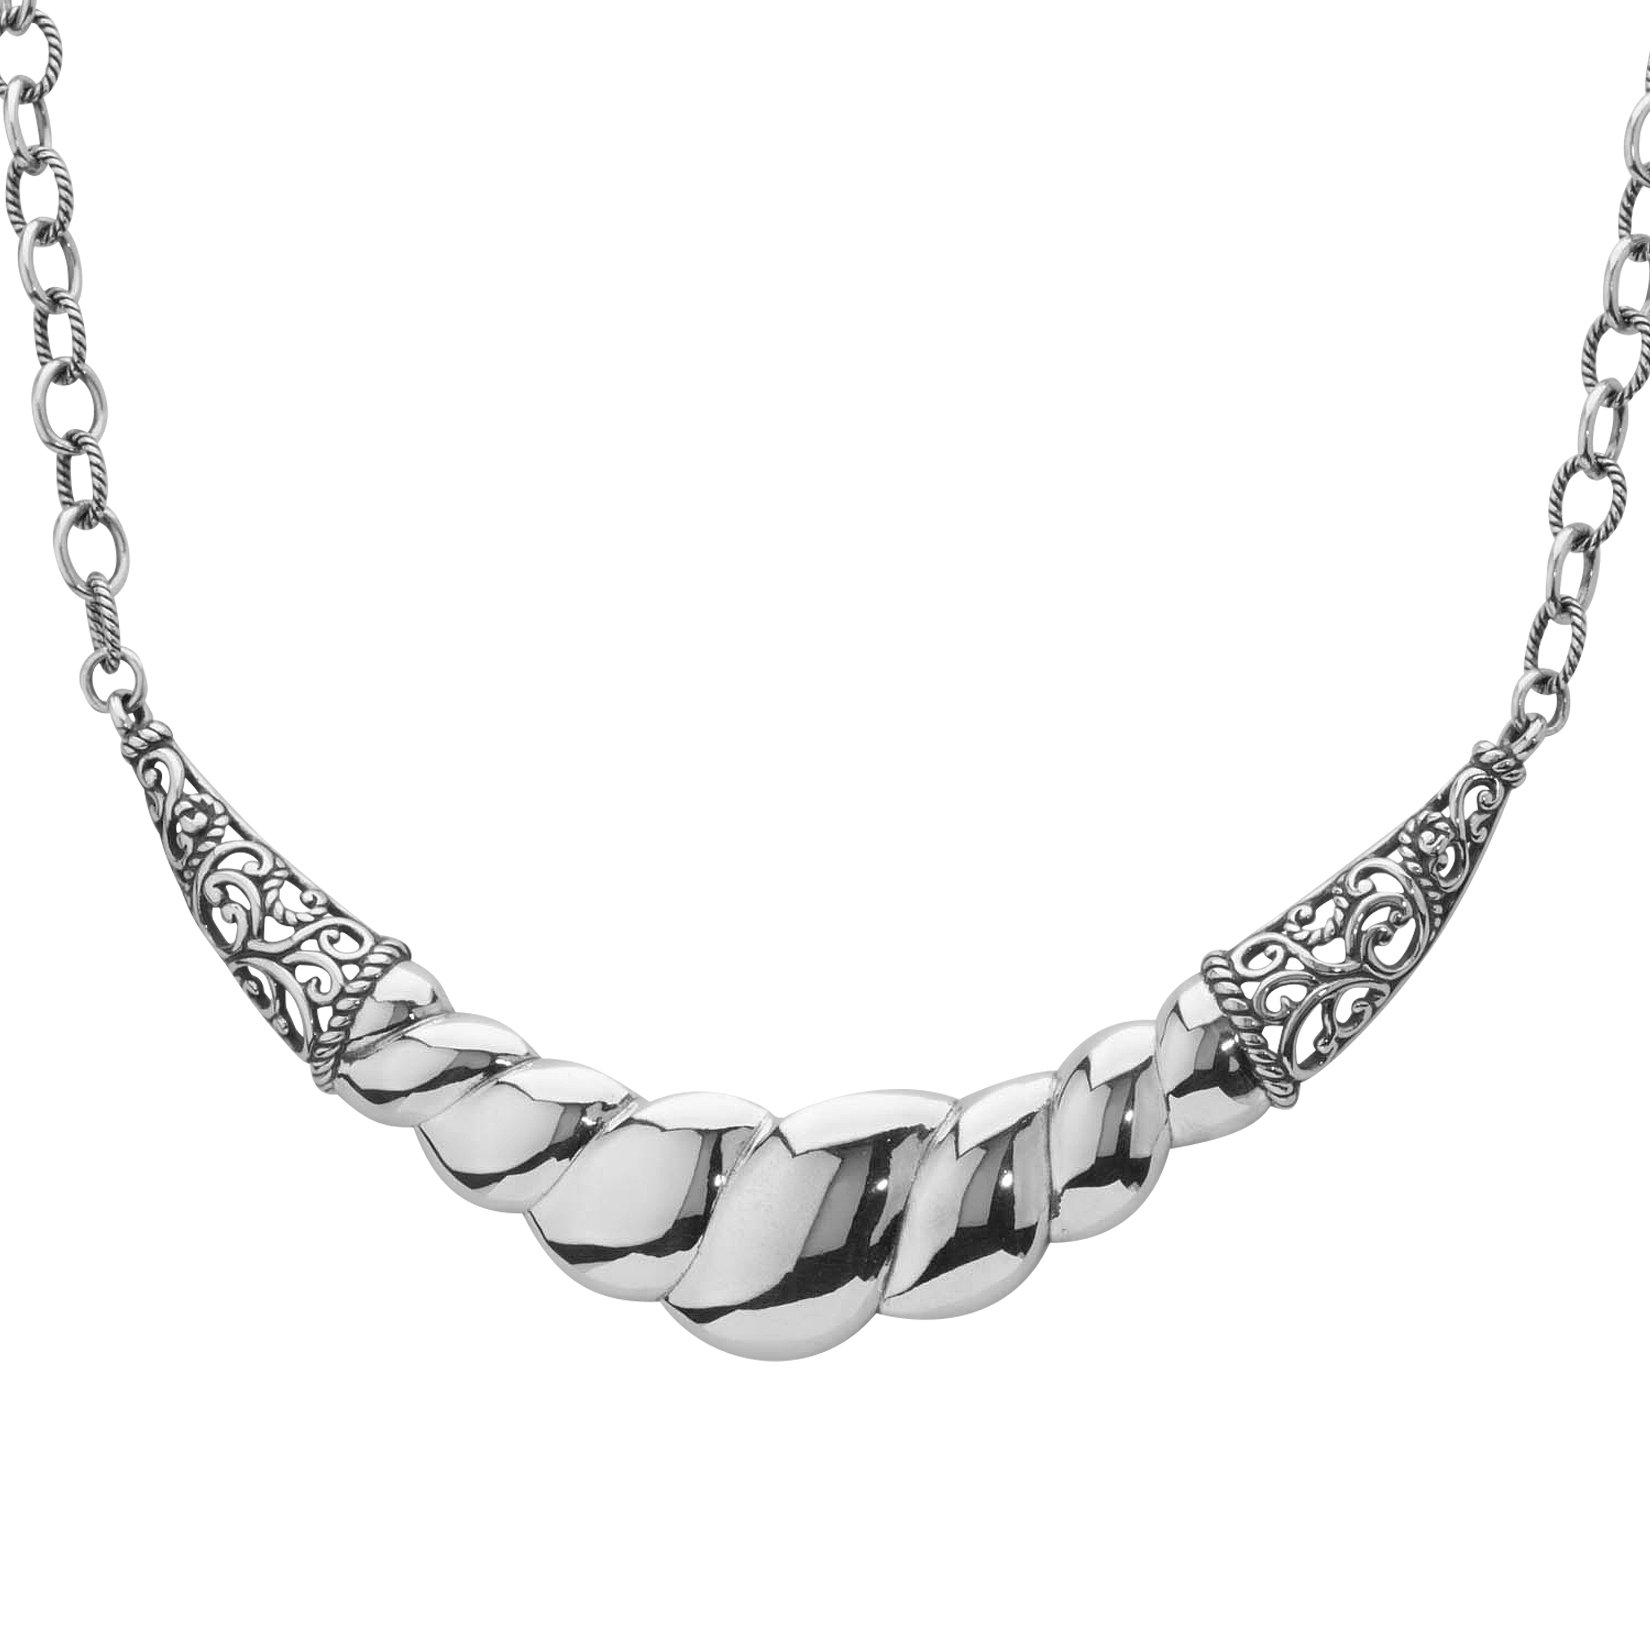 Carolyn Pollack Signature Genuine .925 Sterling Silver Ribbed Scroll Statement Necklace